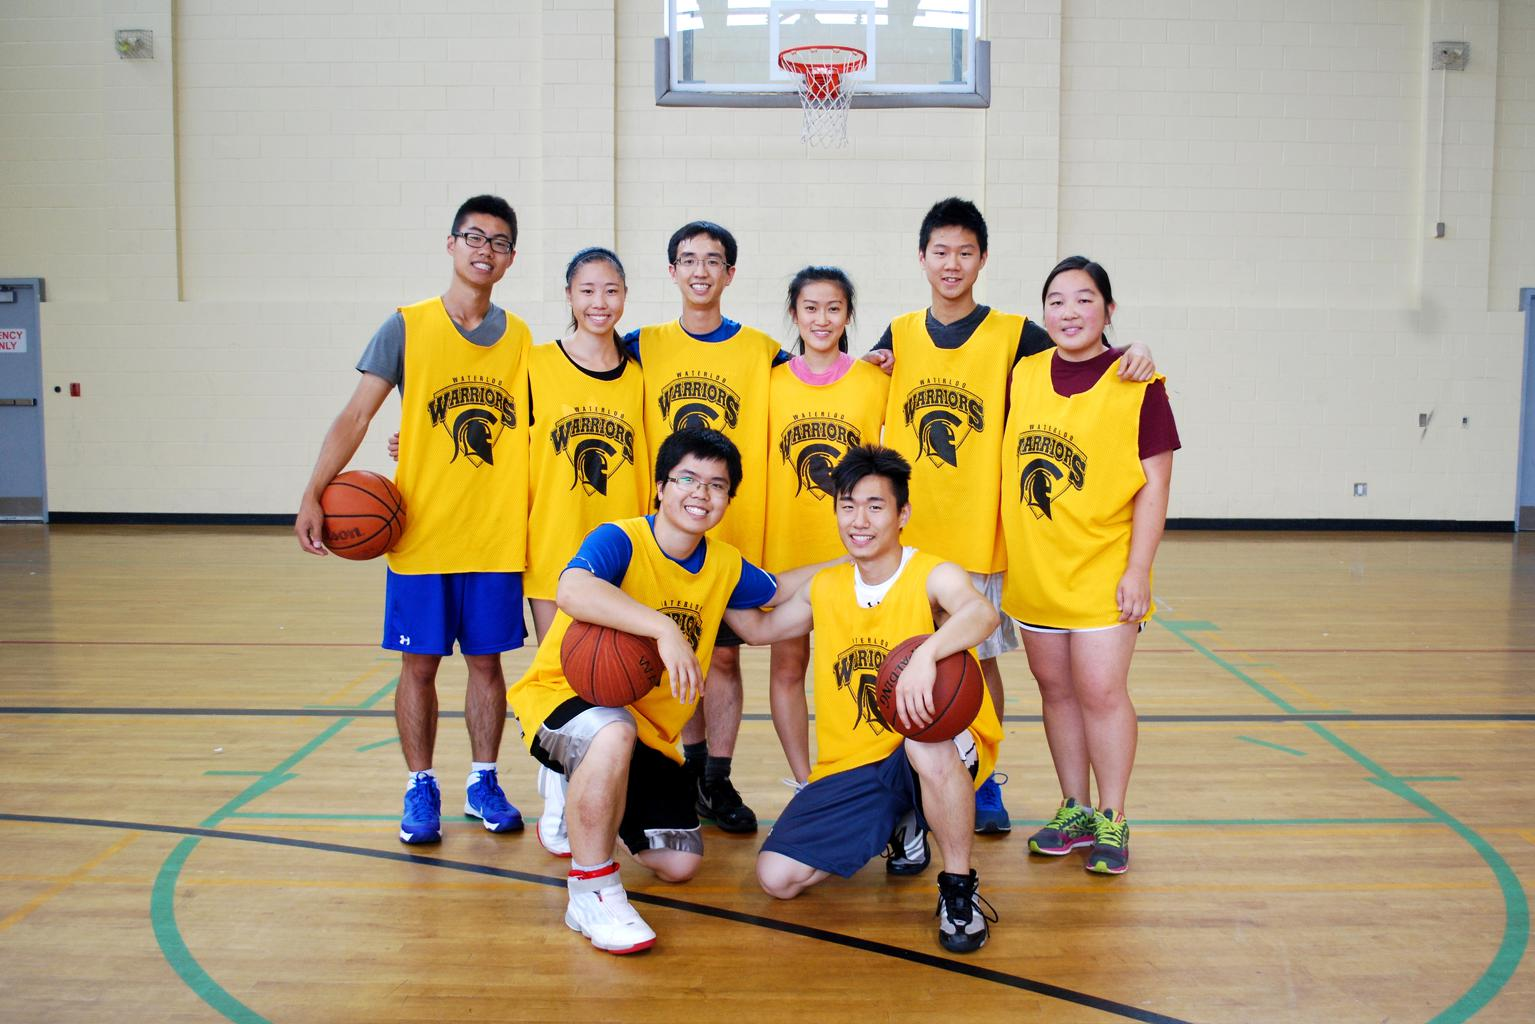 Intramural basketball team picture